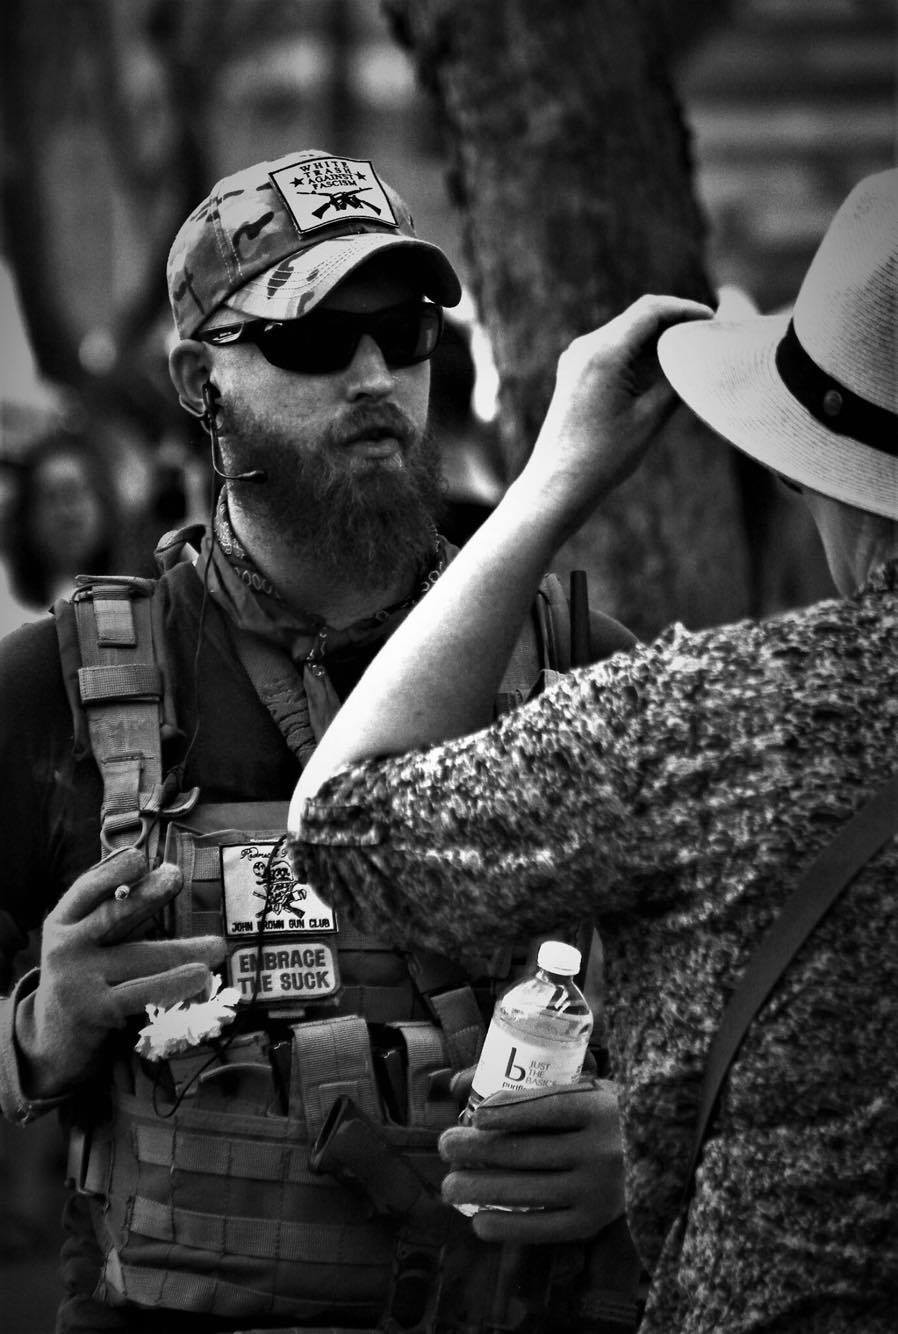 Trump supporter with hand on sidearm